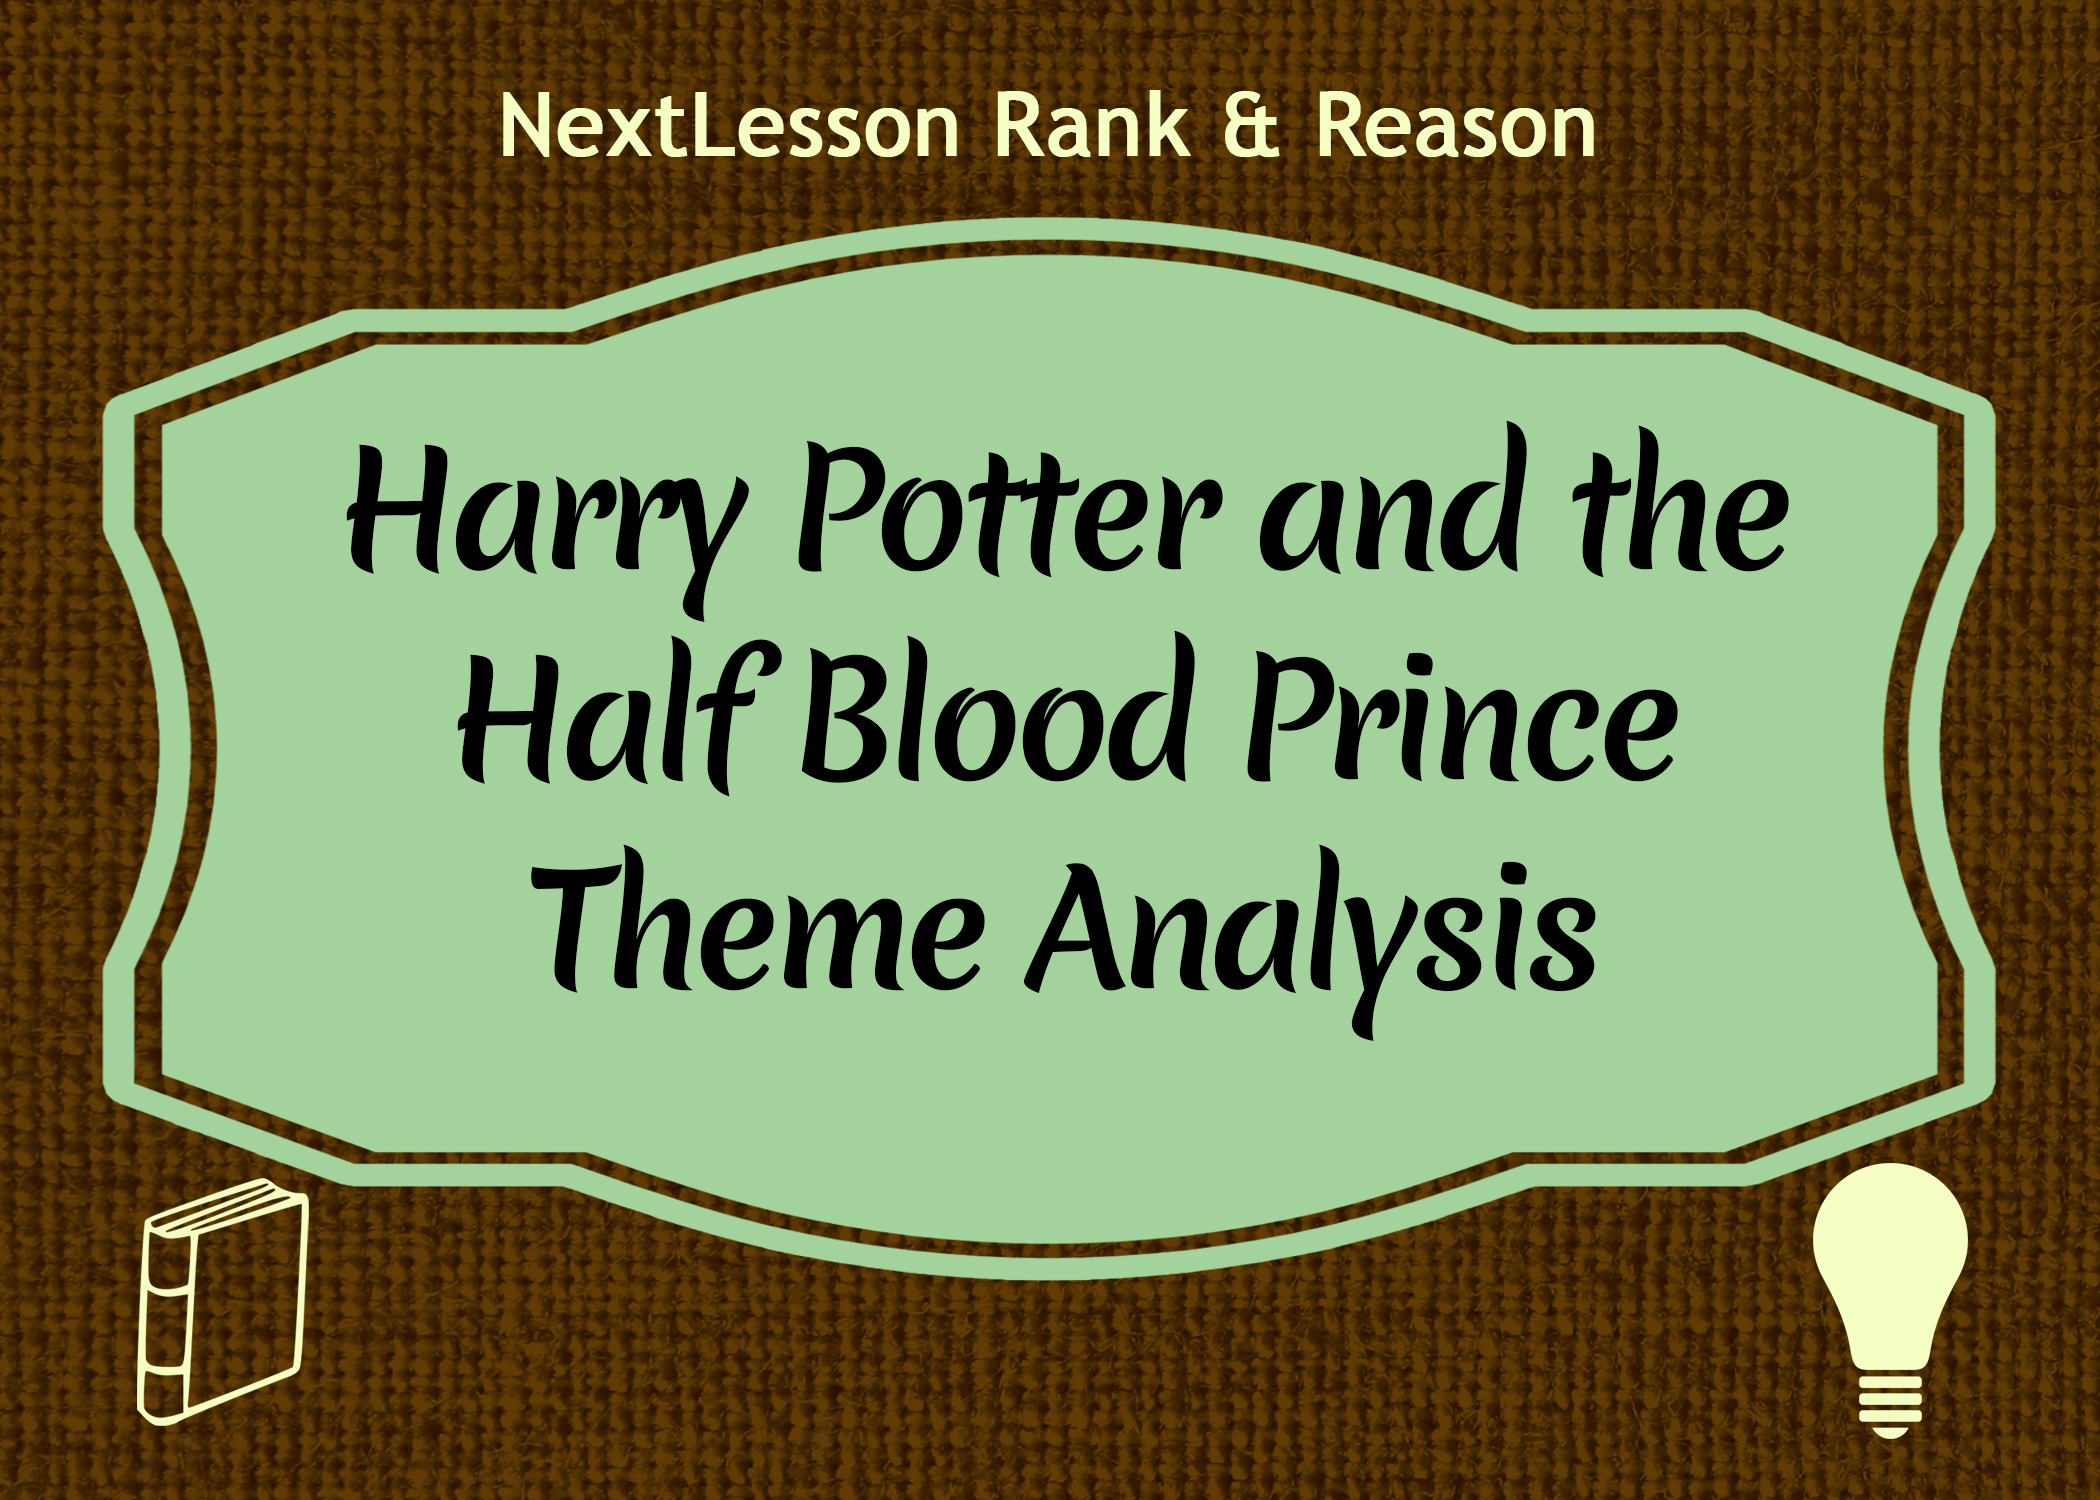 Harry potter analysis essay